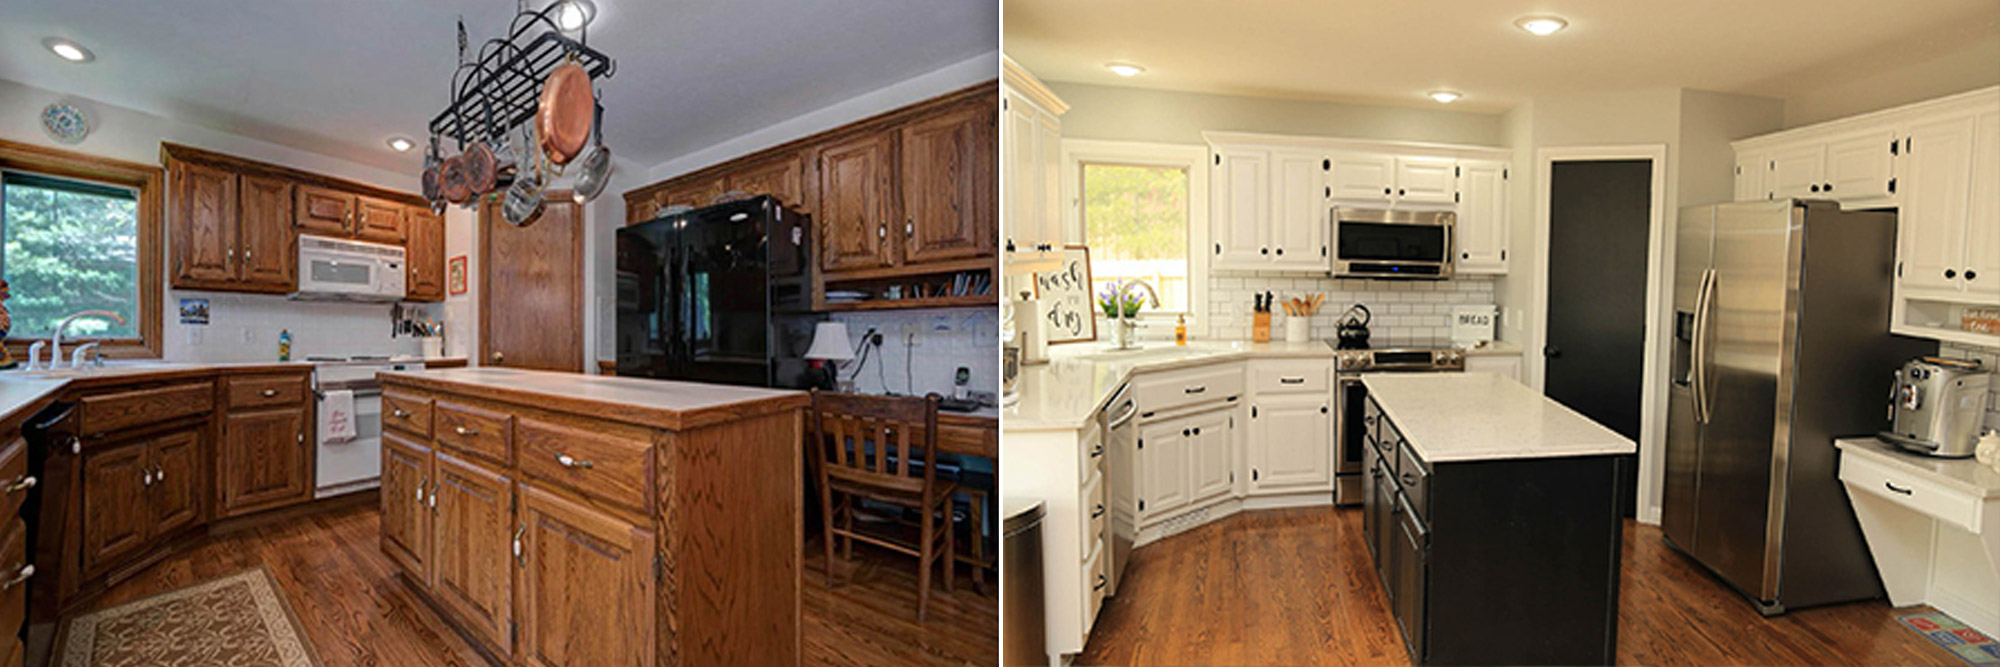 Kitchen Cabinets - Before & After